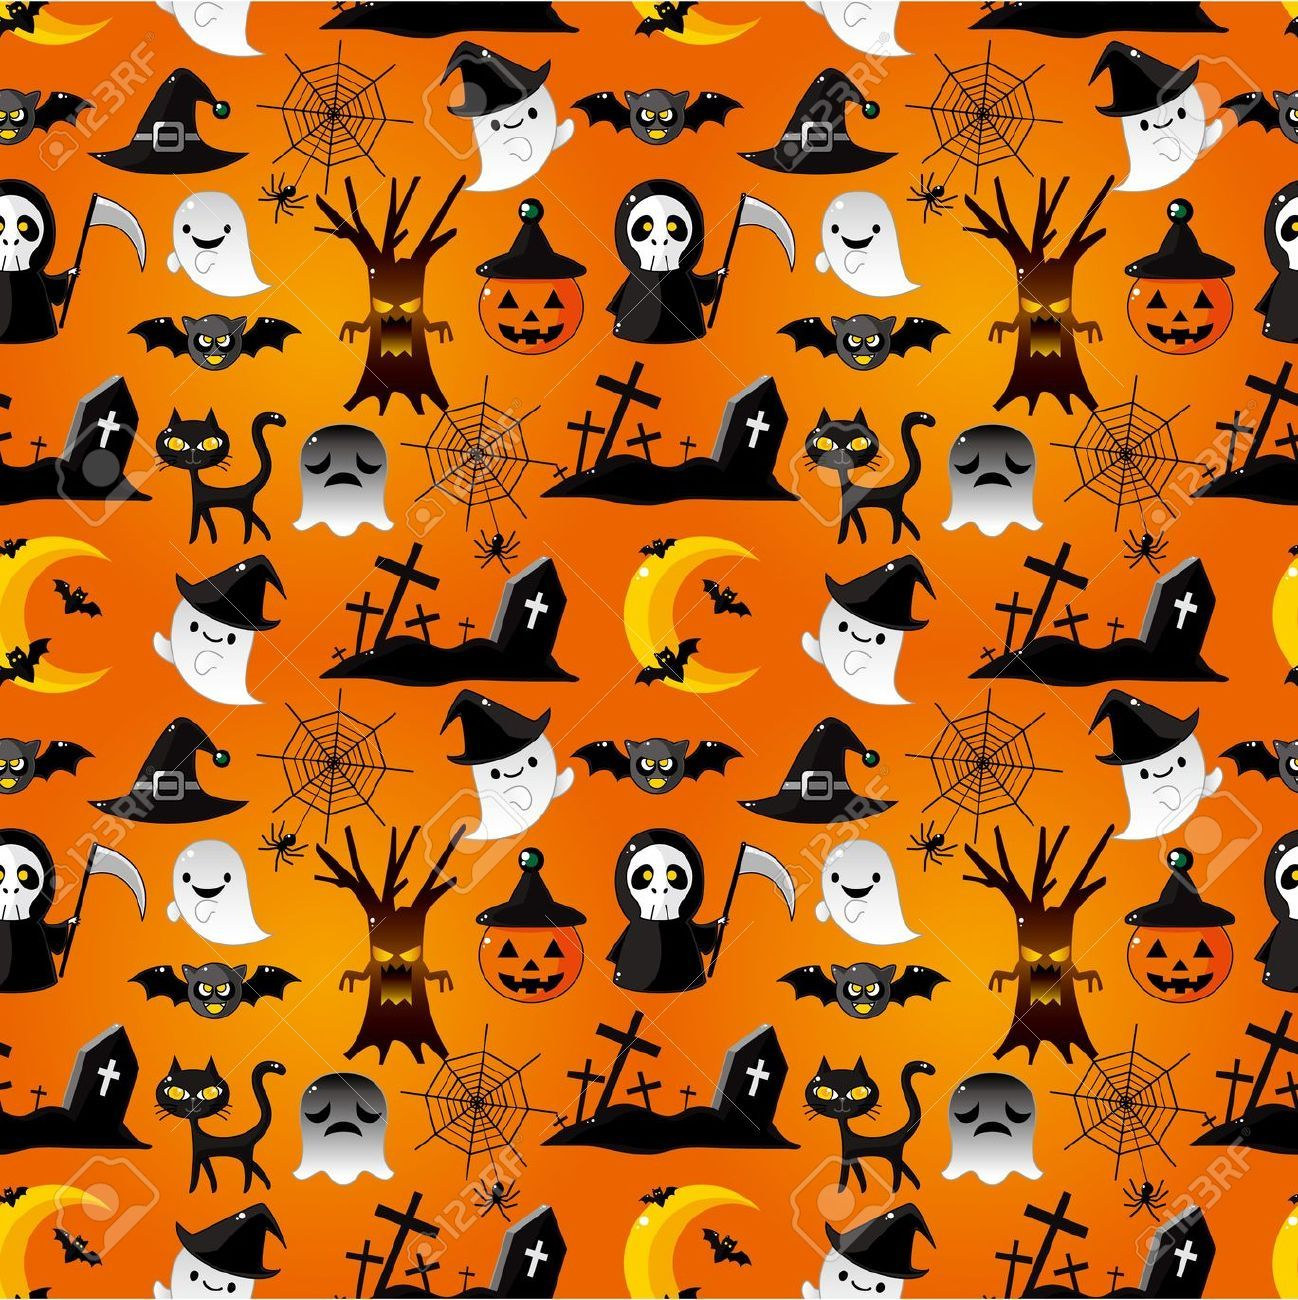 Cute Halloween Wallpapers Phone Minionswallpaper Halloween Wallpaper Cute Halloween Halloween Cartoons